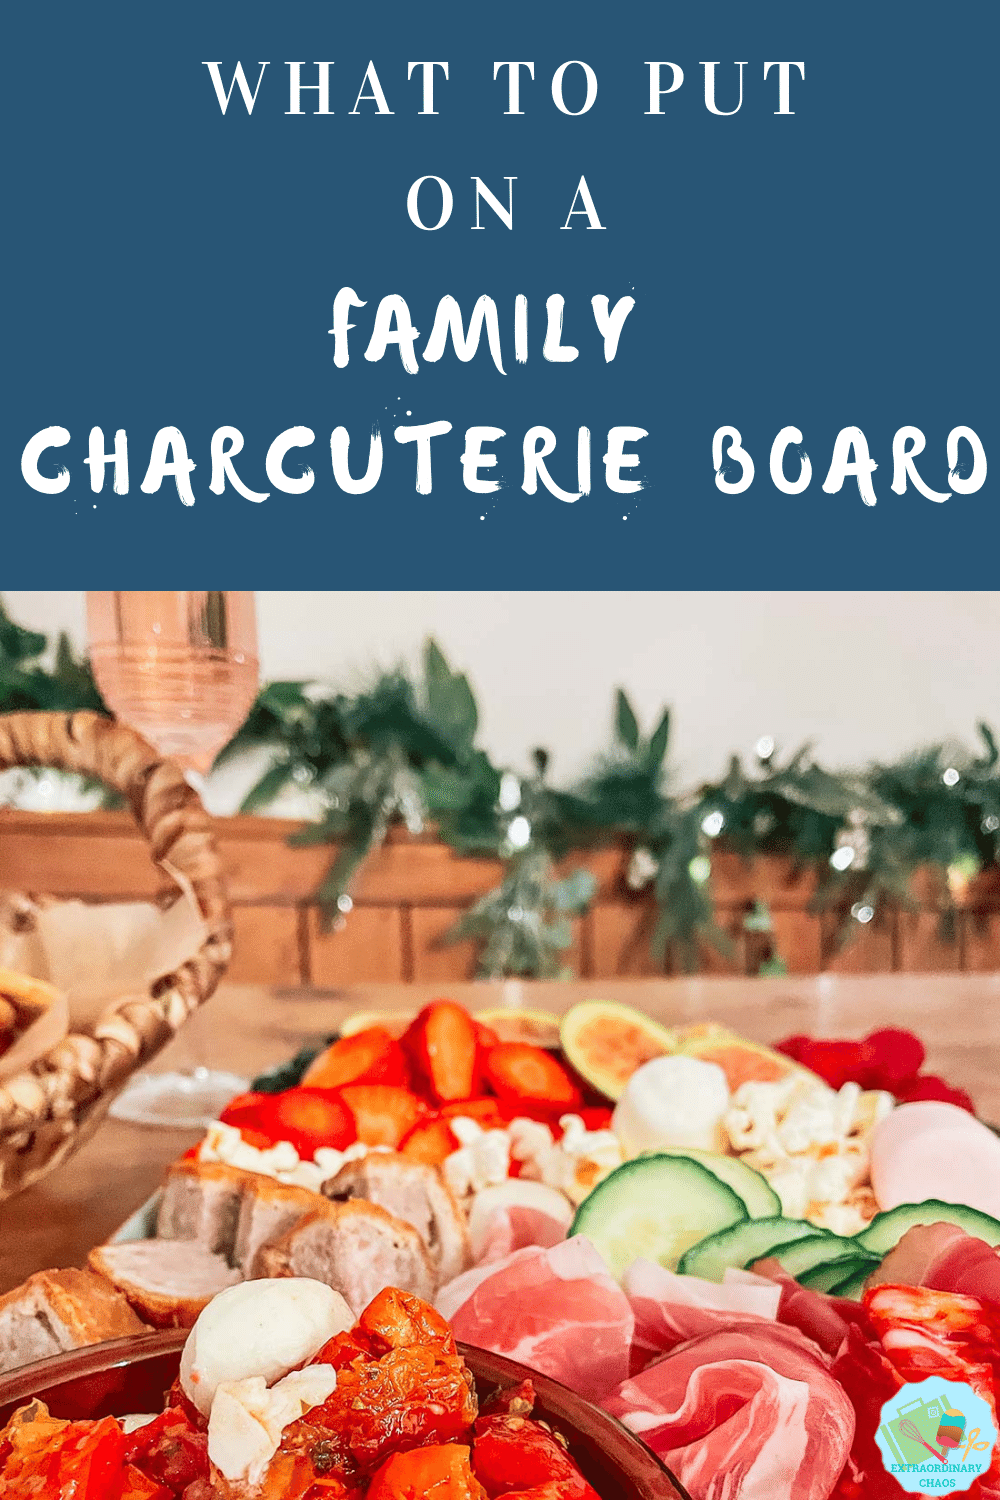 What to put on a family charcuterie board to suit the whole family when making a family sweet and savoury sharing platter